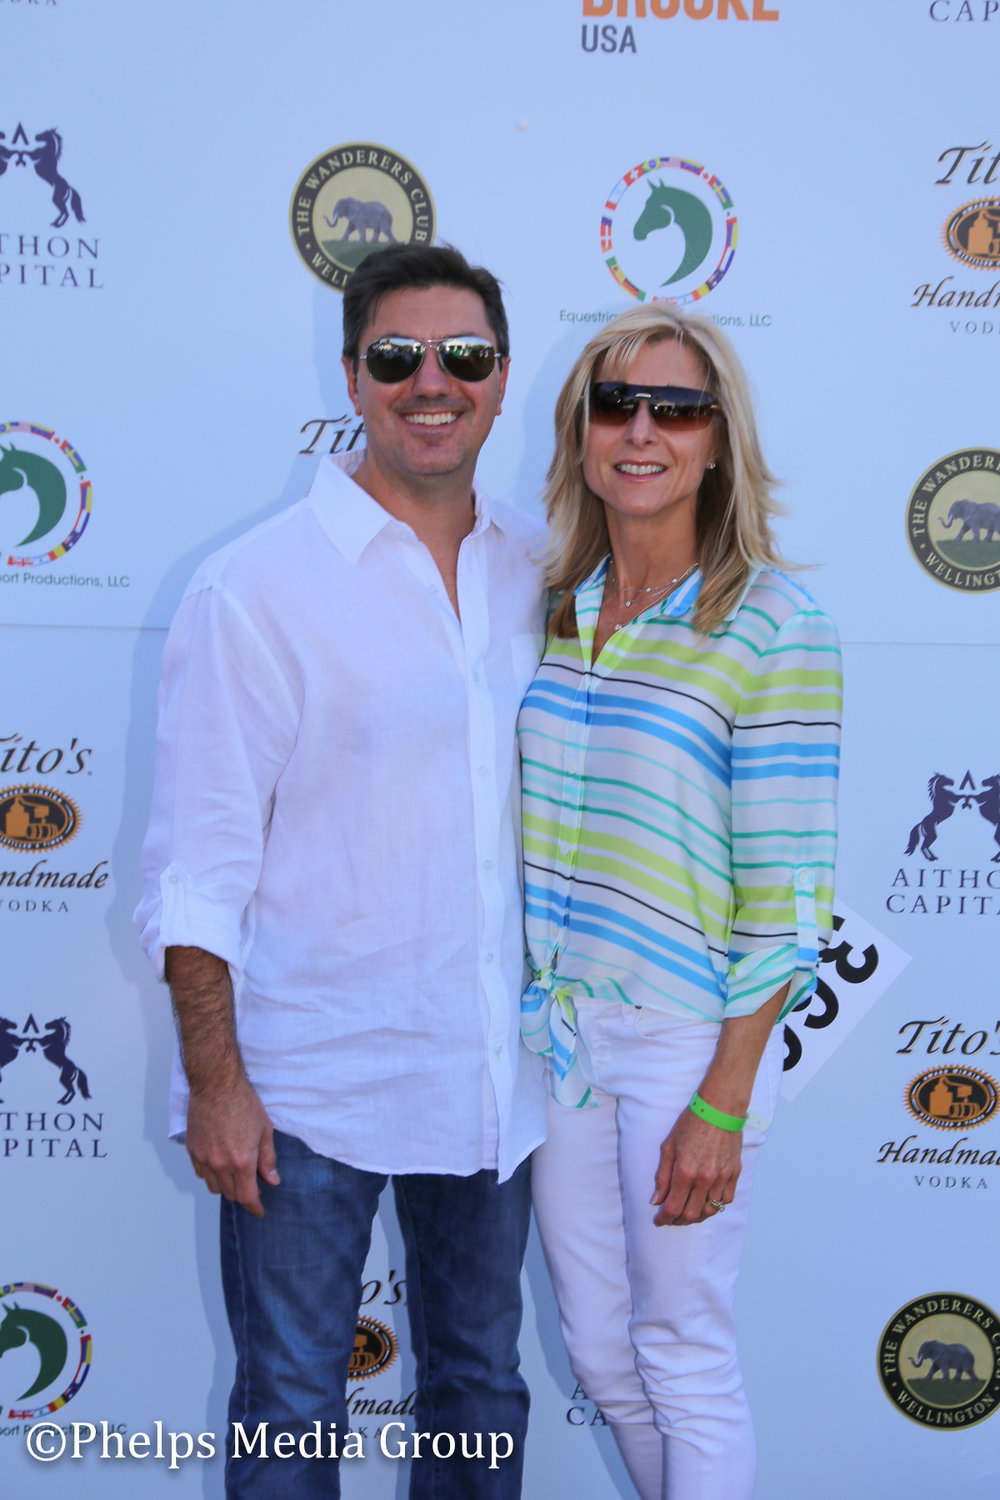 Michael and Cindi Napoleone; Nic Roldan's 2nd Annual Sunset Polo & White Party, FL, by Phelps Media.jpg